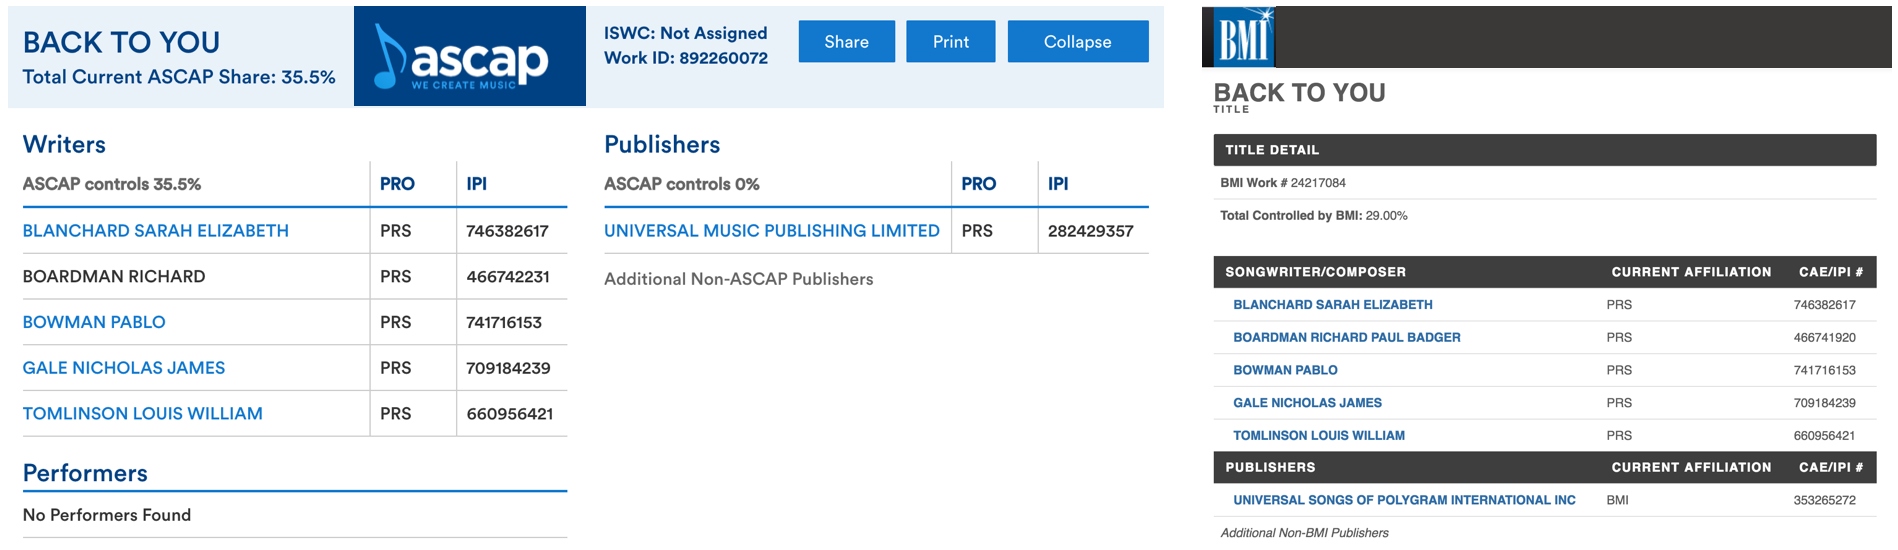 ASCAP and BMI registrations for 'Back To You' (May 27, 2017)